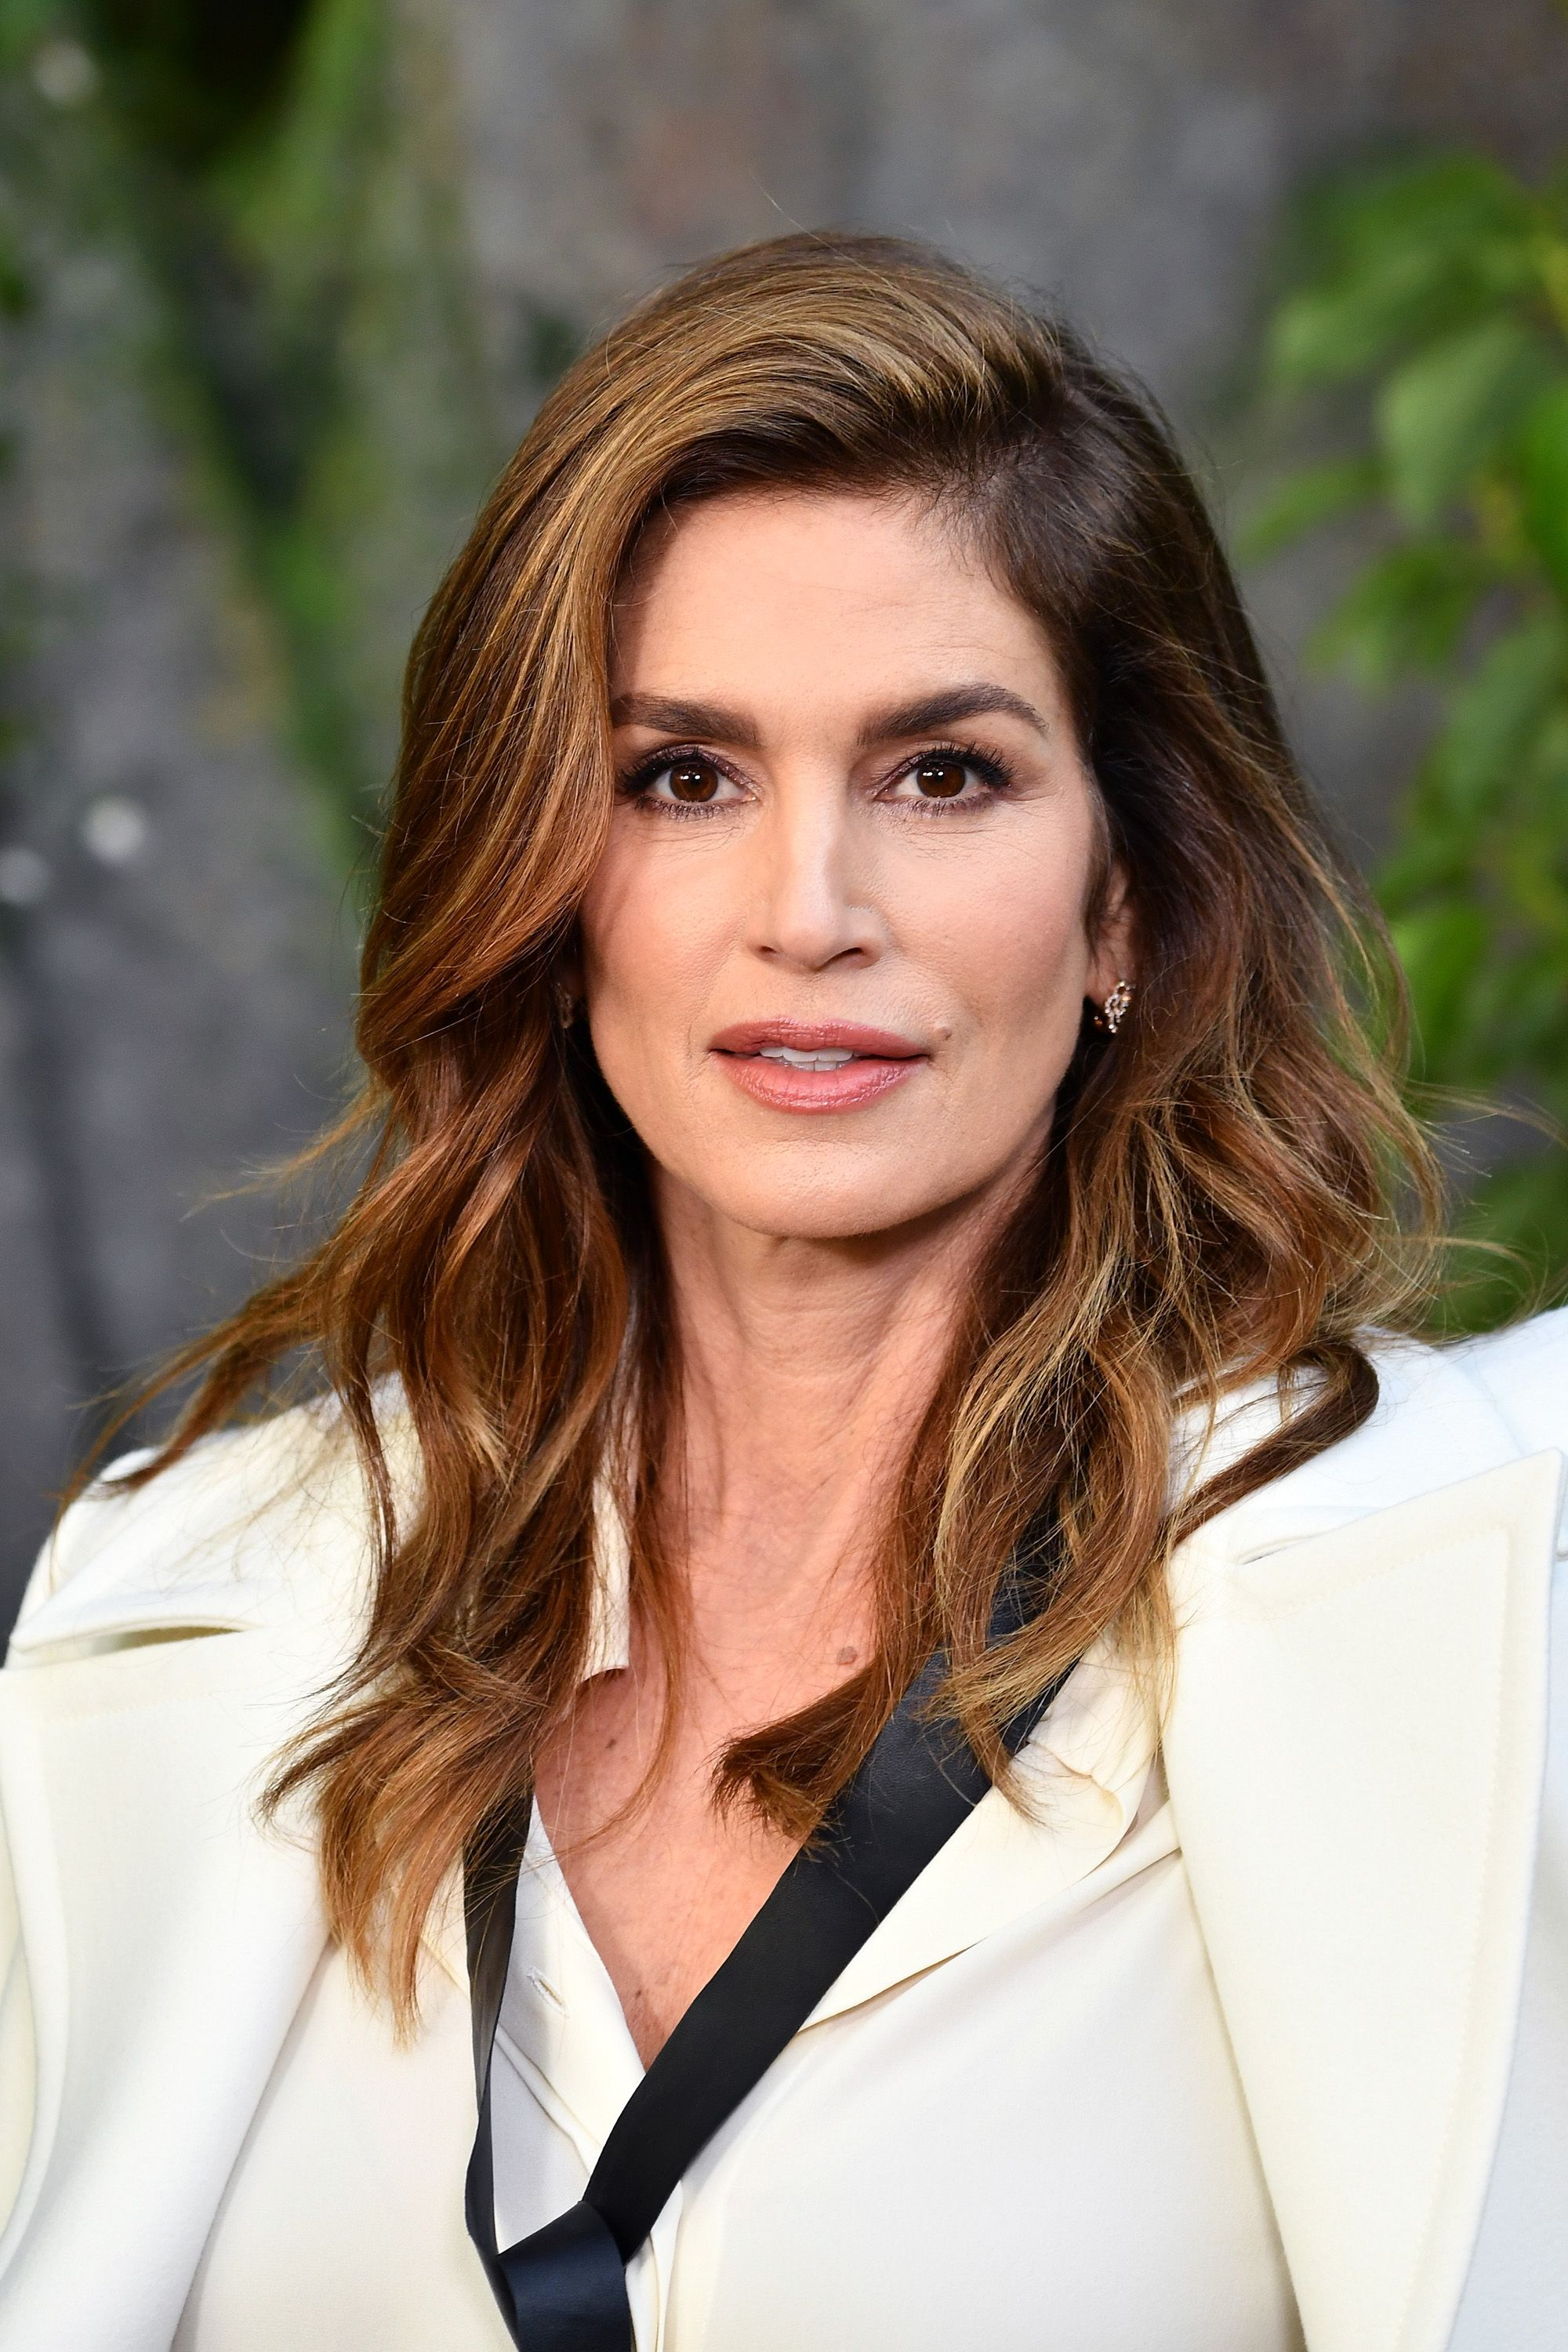 """Cindy Crawford """"I'm not going to lie to myself, past a certain age, creams work on the texture of your skin but, in order to restore elasticity, all I can really count on is vitamin injections, botox, and collagen,"""" she told InStyle Magazine in an interview. """"I have a very simple, healthy life, which works miracles. I drink a lot of water, watch what I eat, and exercise… but I owe the quality of my skin to my cosmetic surgeon."""""""